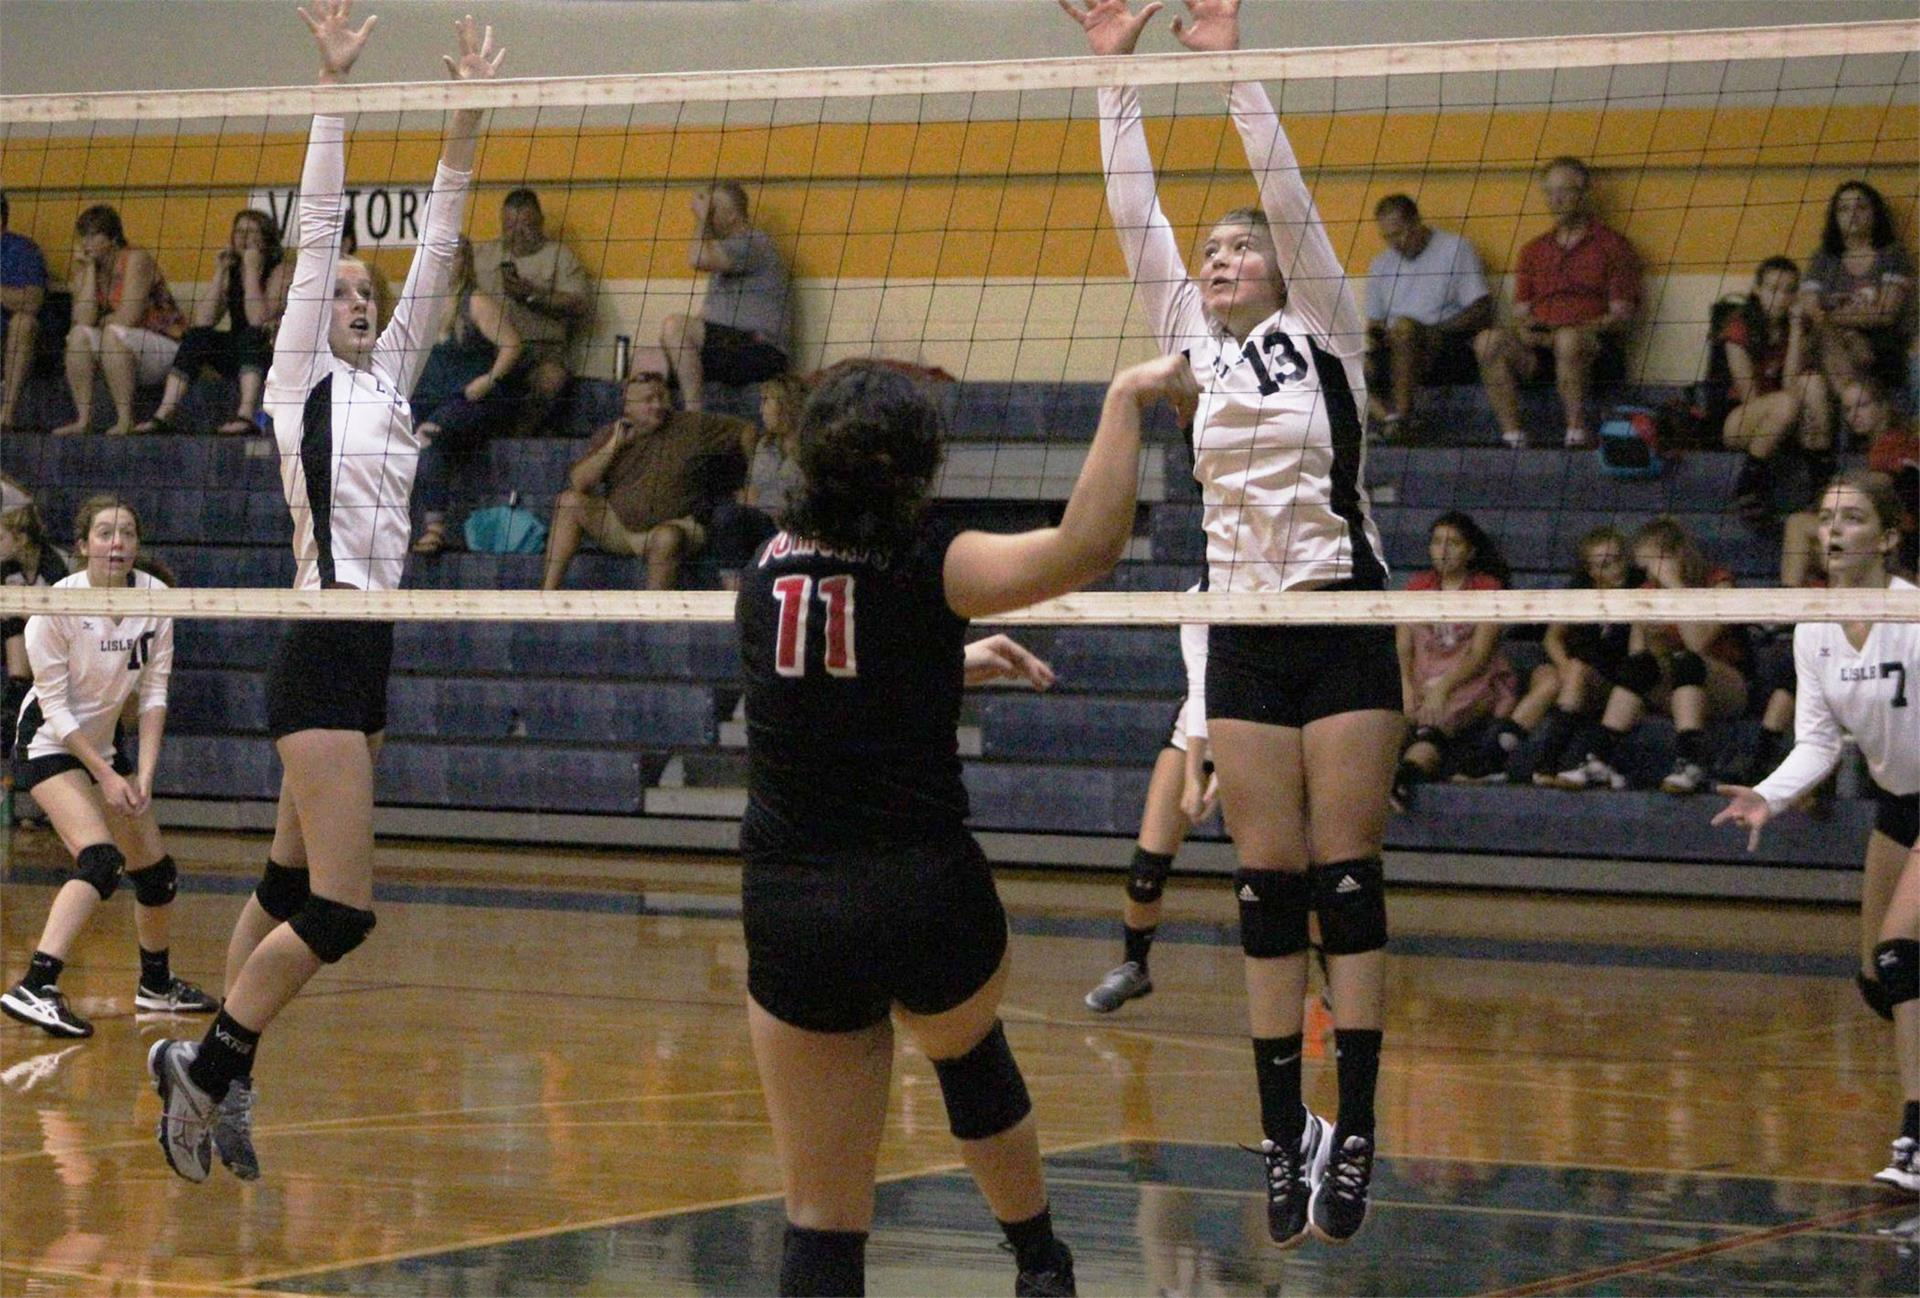 LHS Volleyball players block at the net